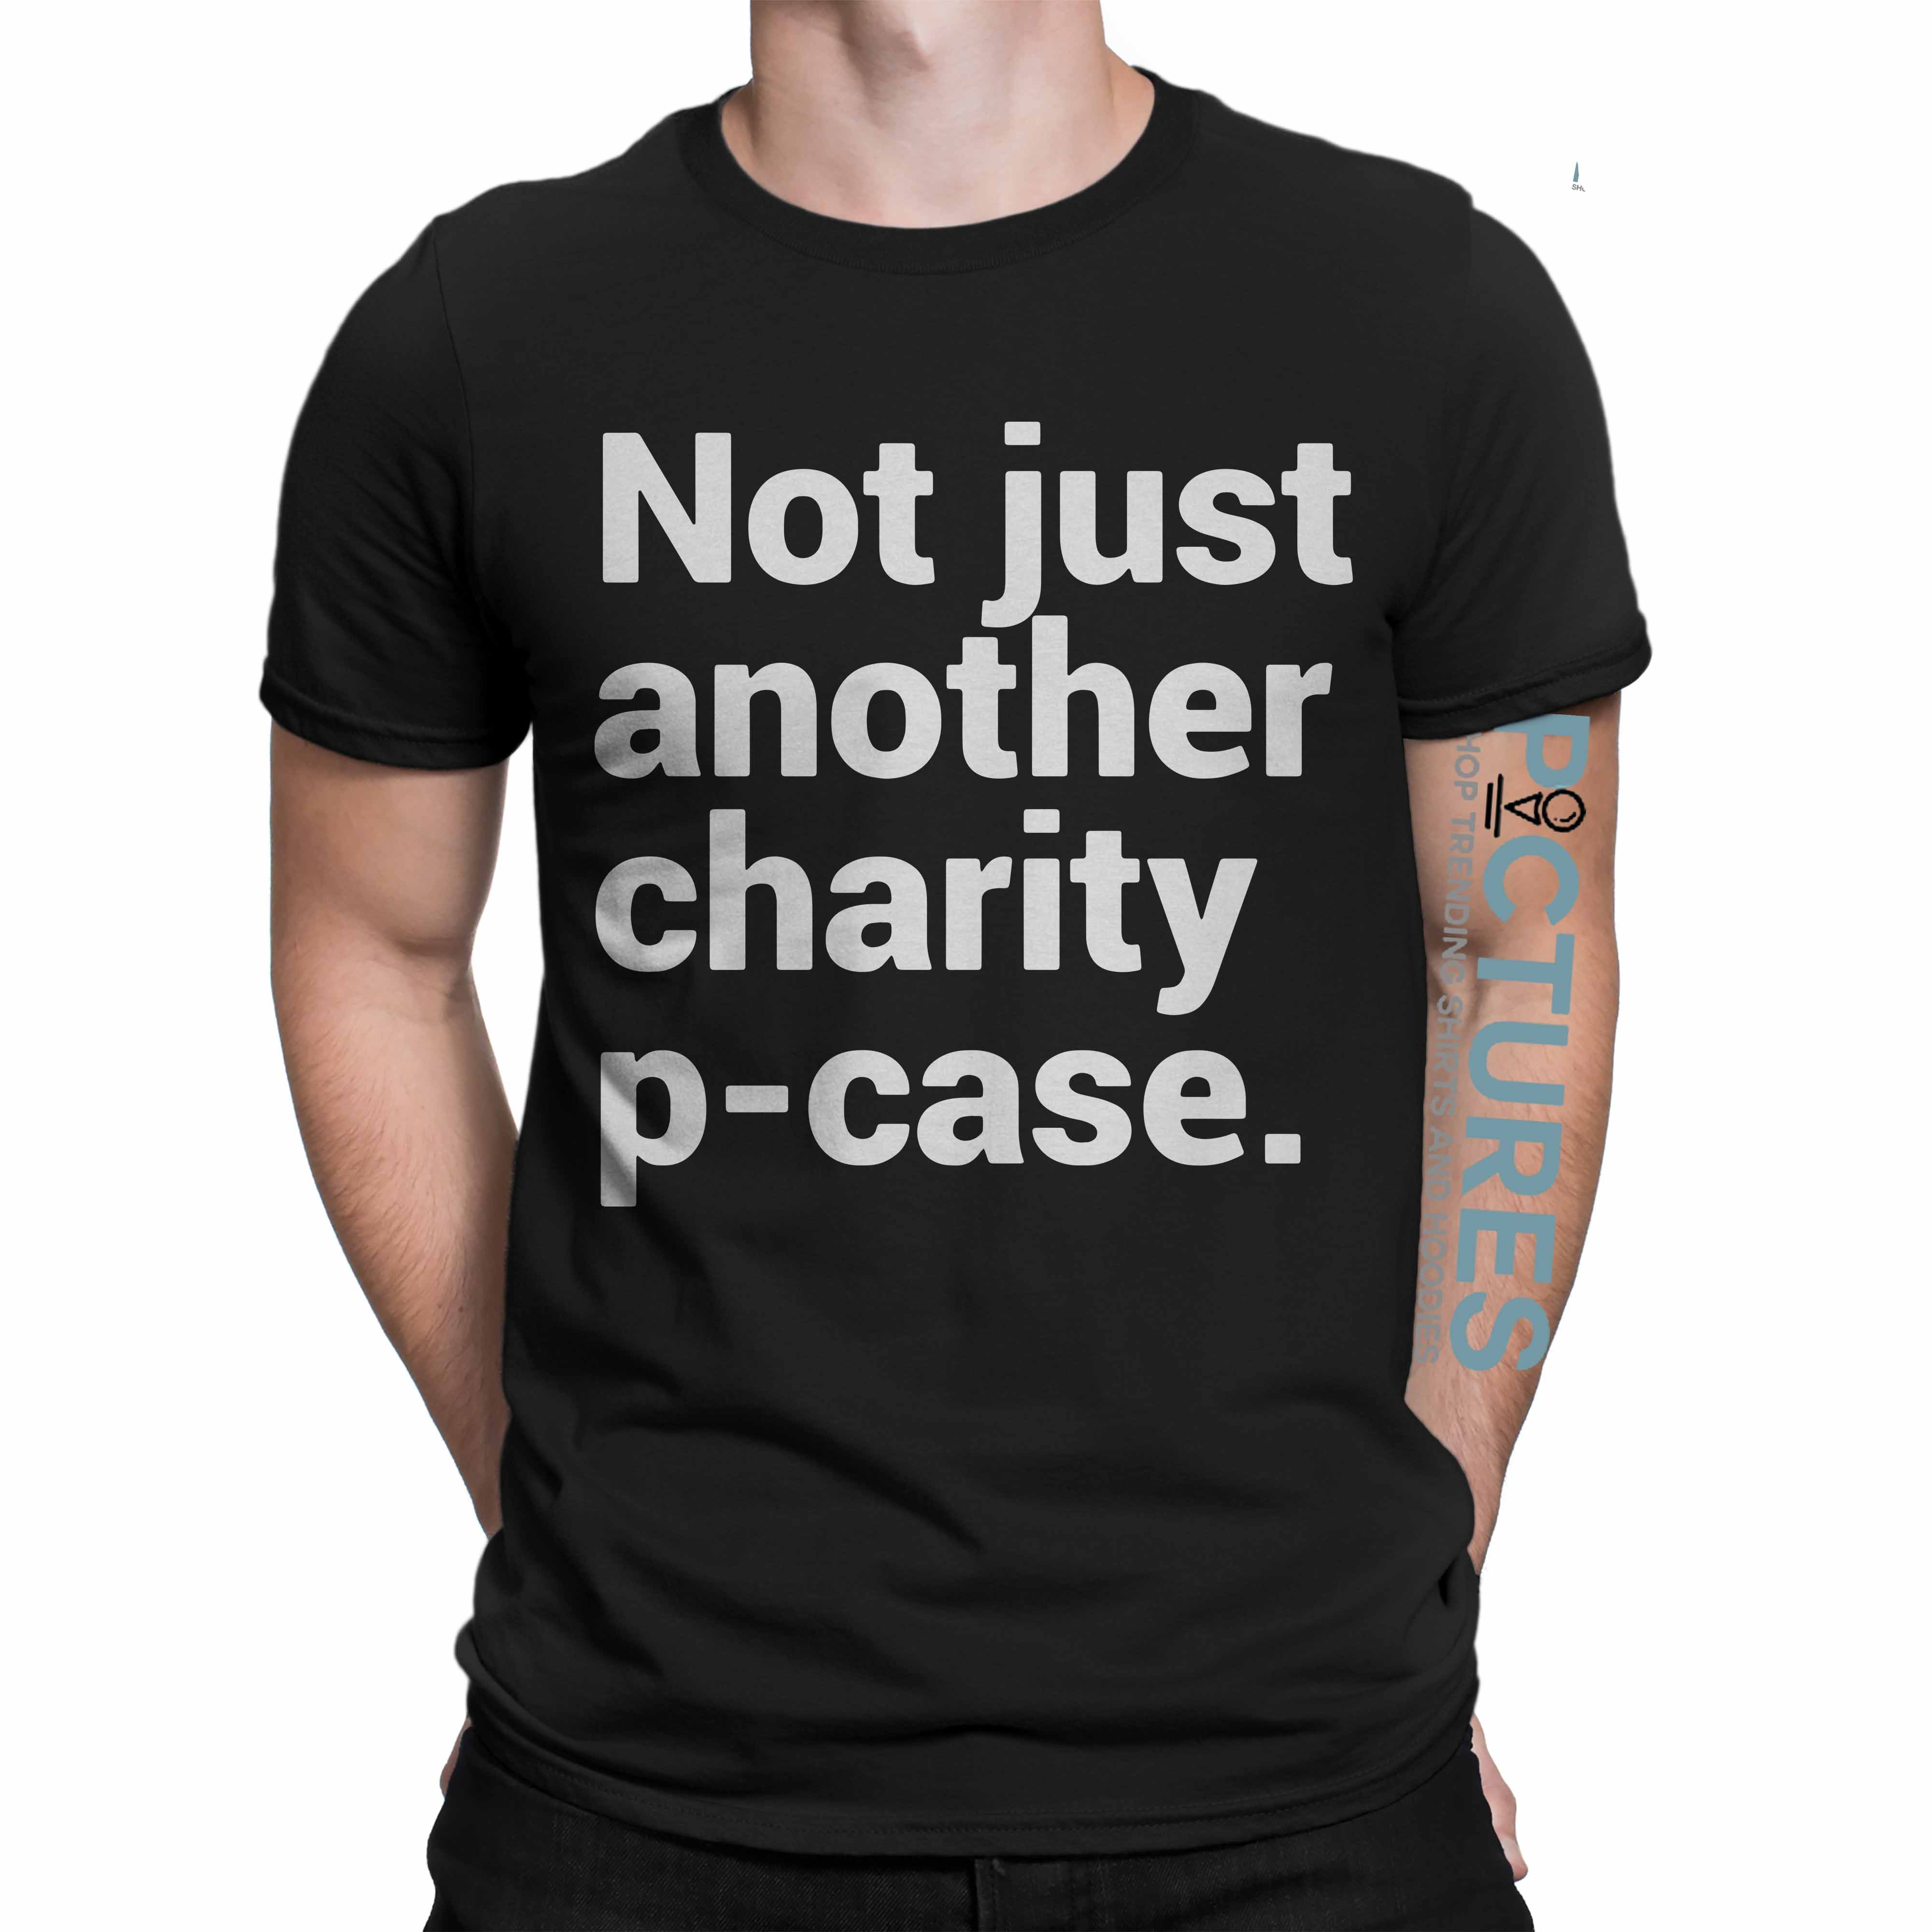 Not just another charity tee shirt